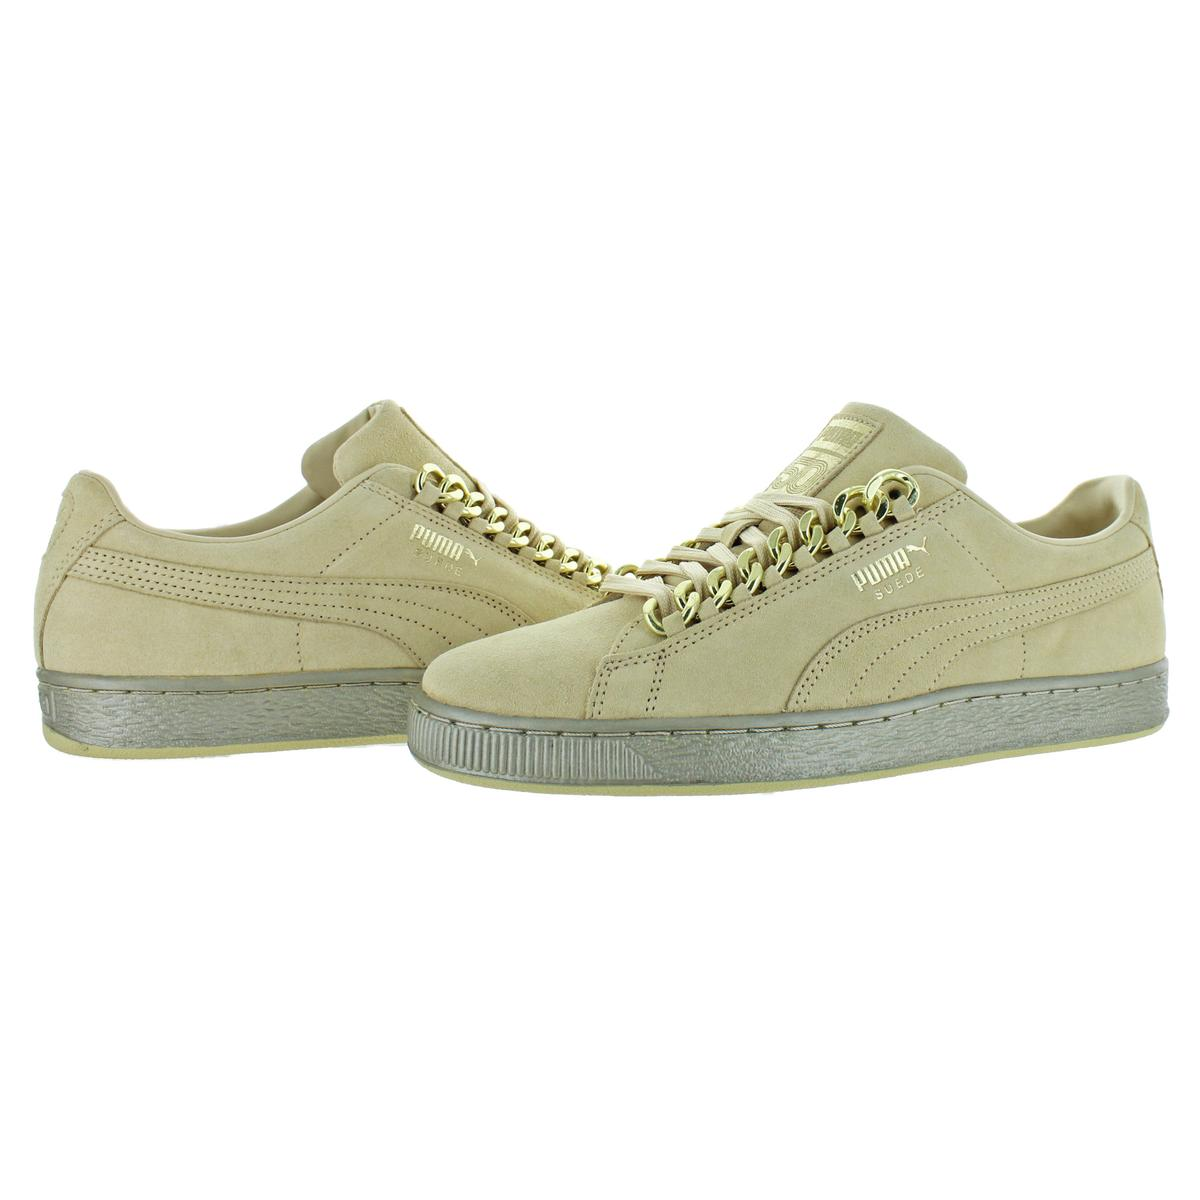 Puma-Suede-Classic-Men-039-s-Fashion-Sneakers-Shoes thumbnail 42